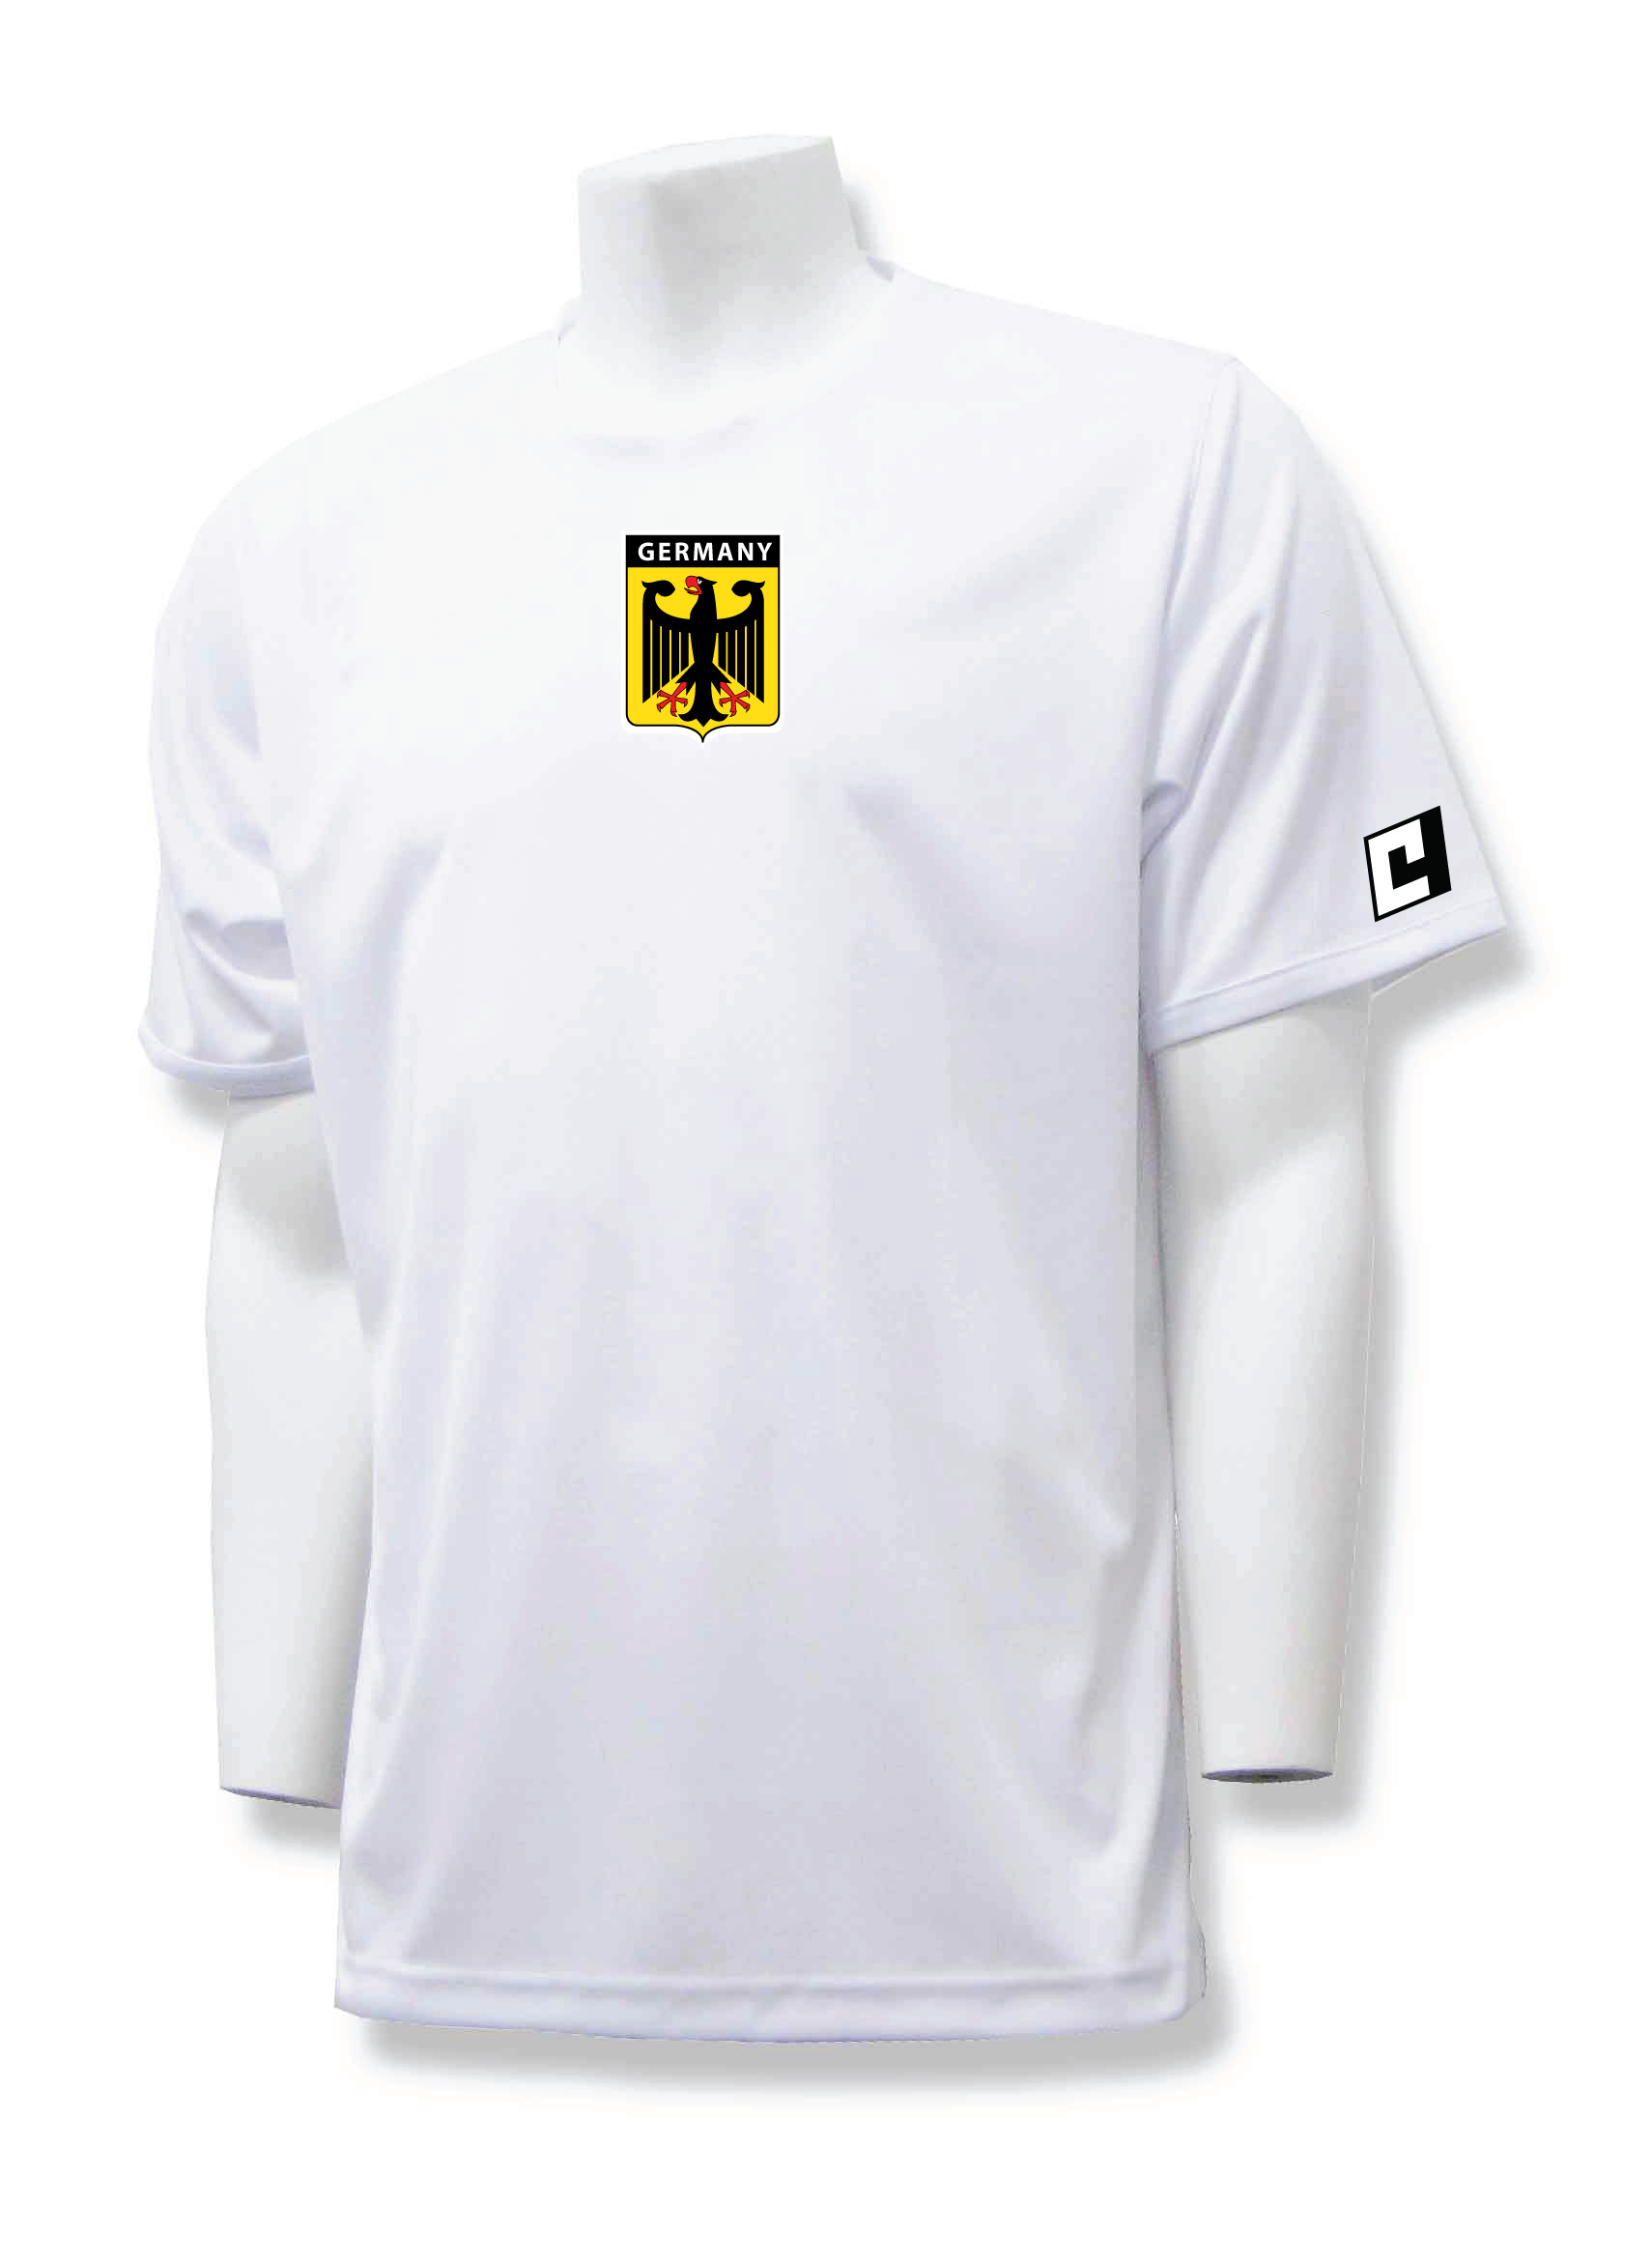 Germany LiteTech top in white